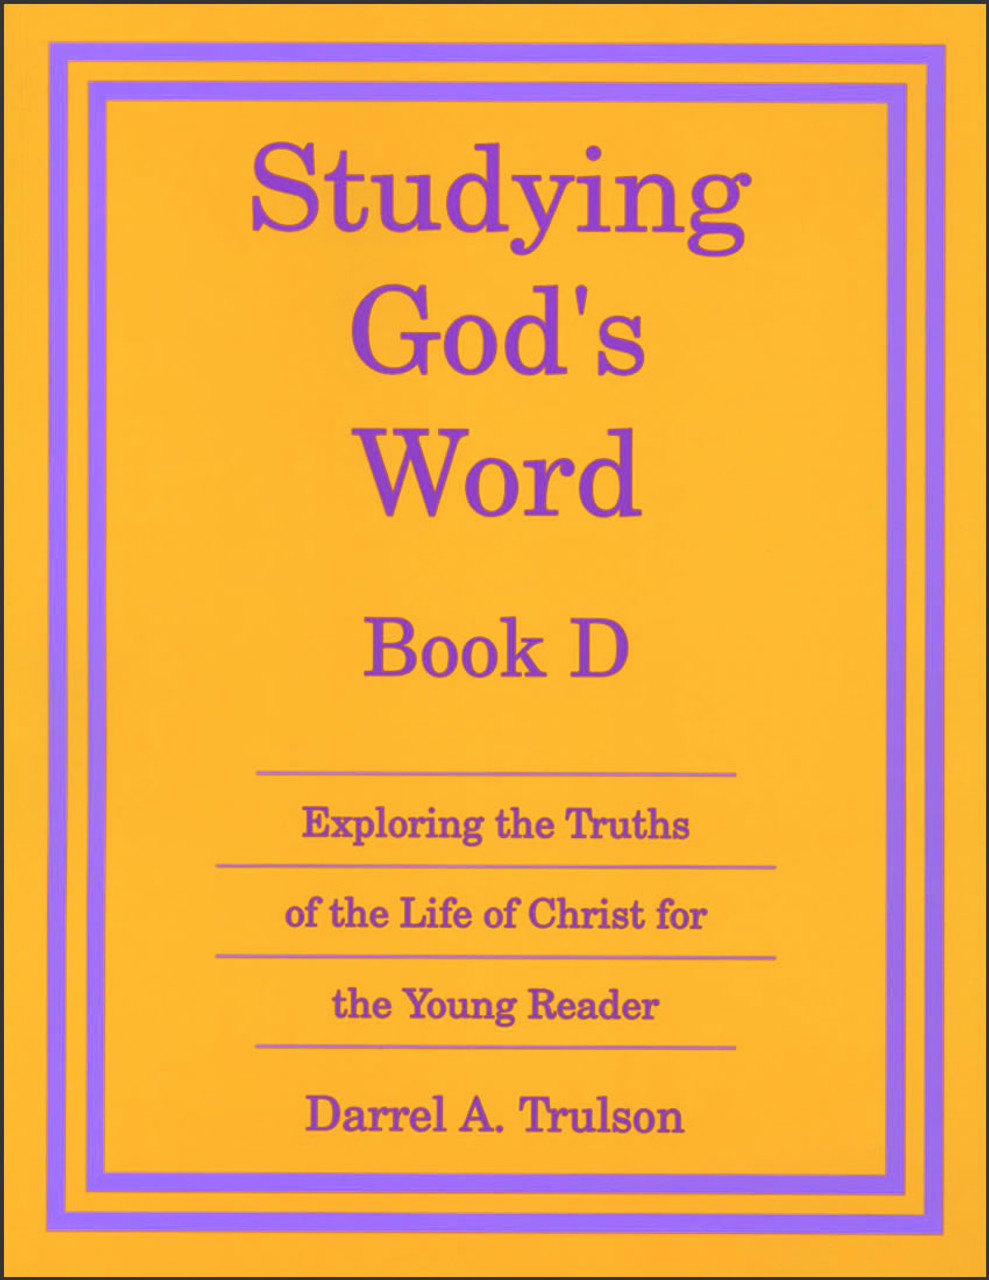 Studying God's Word Book D